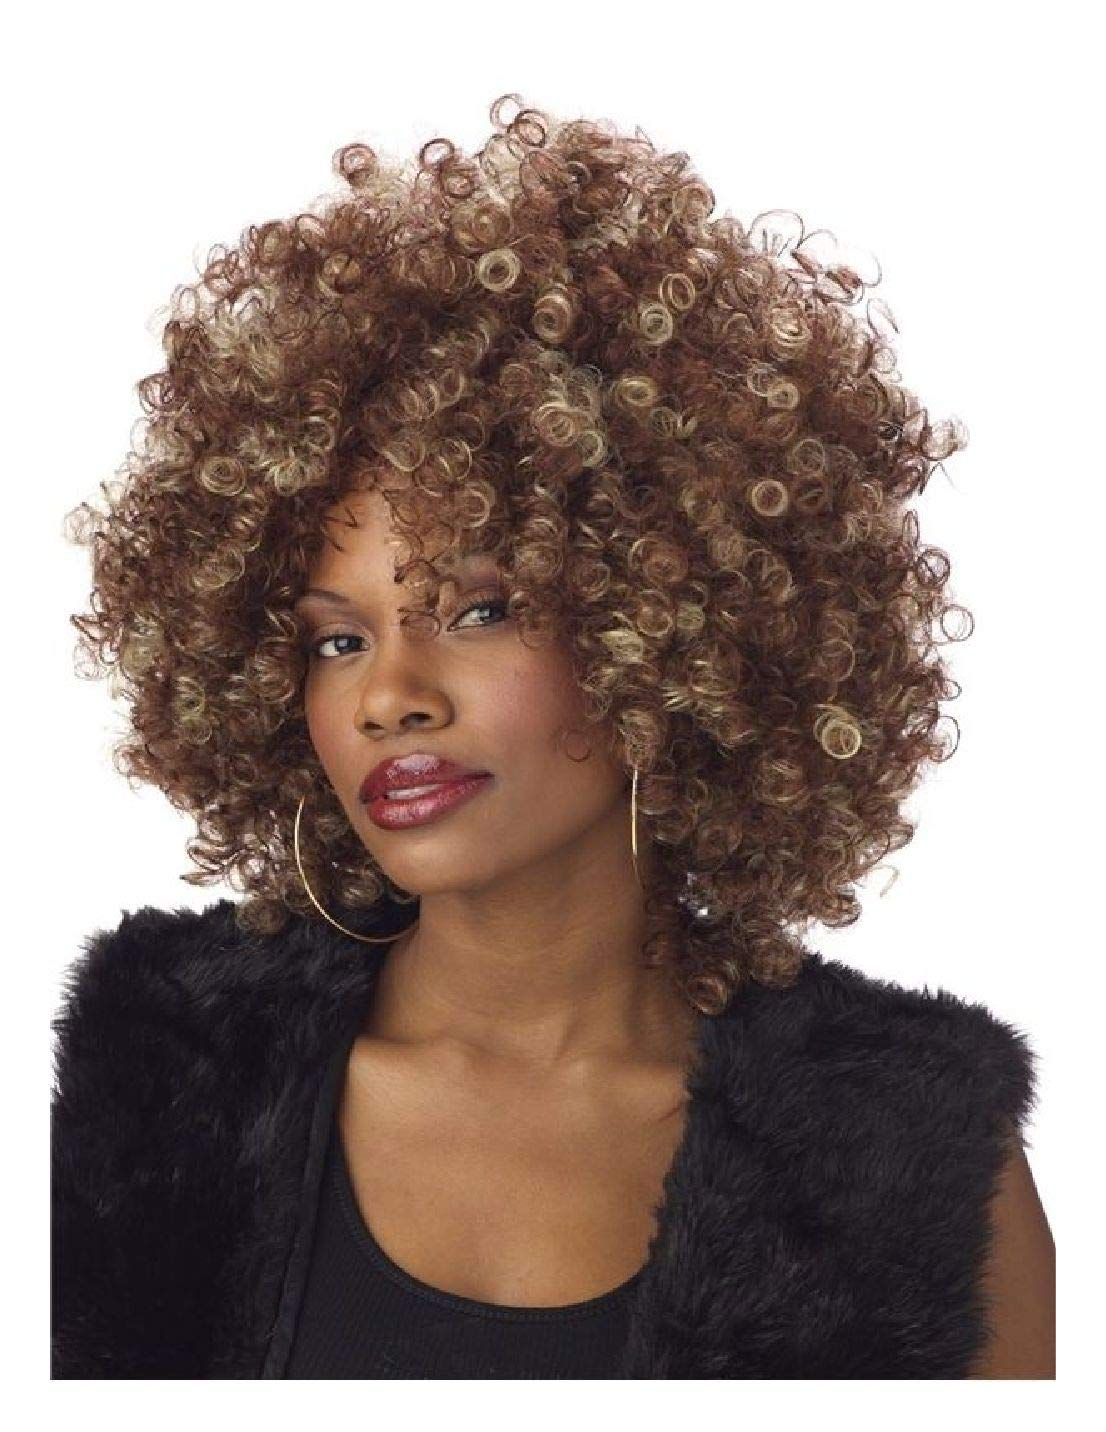 Ovedcray Costume series Fine Foxy Fro Wig